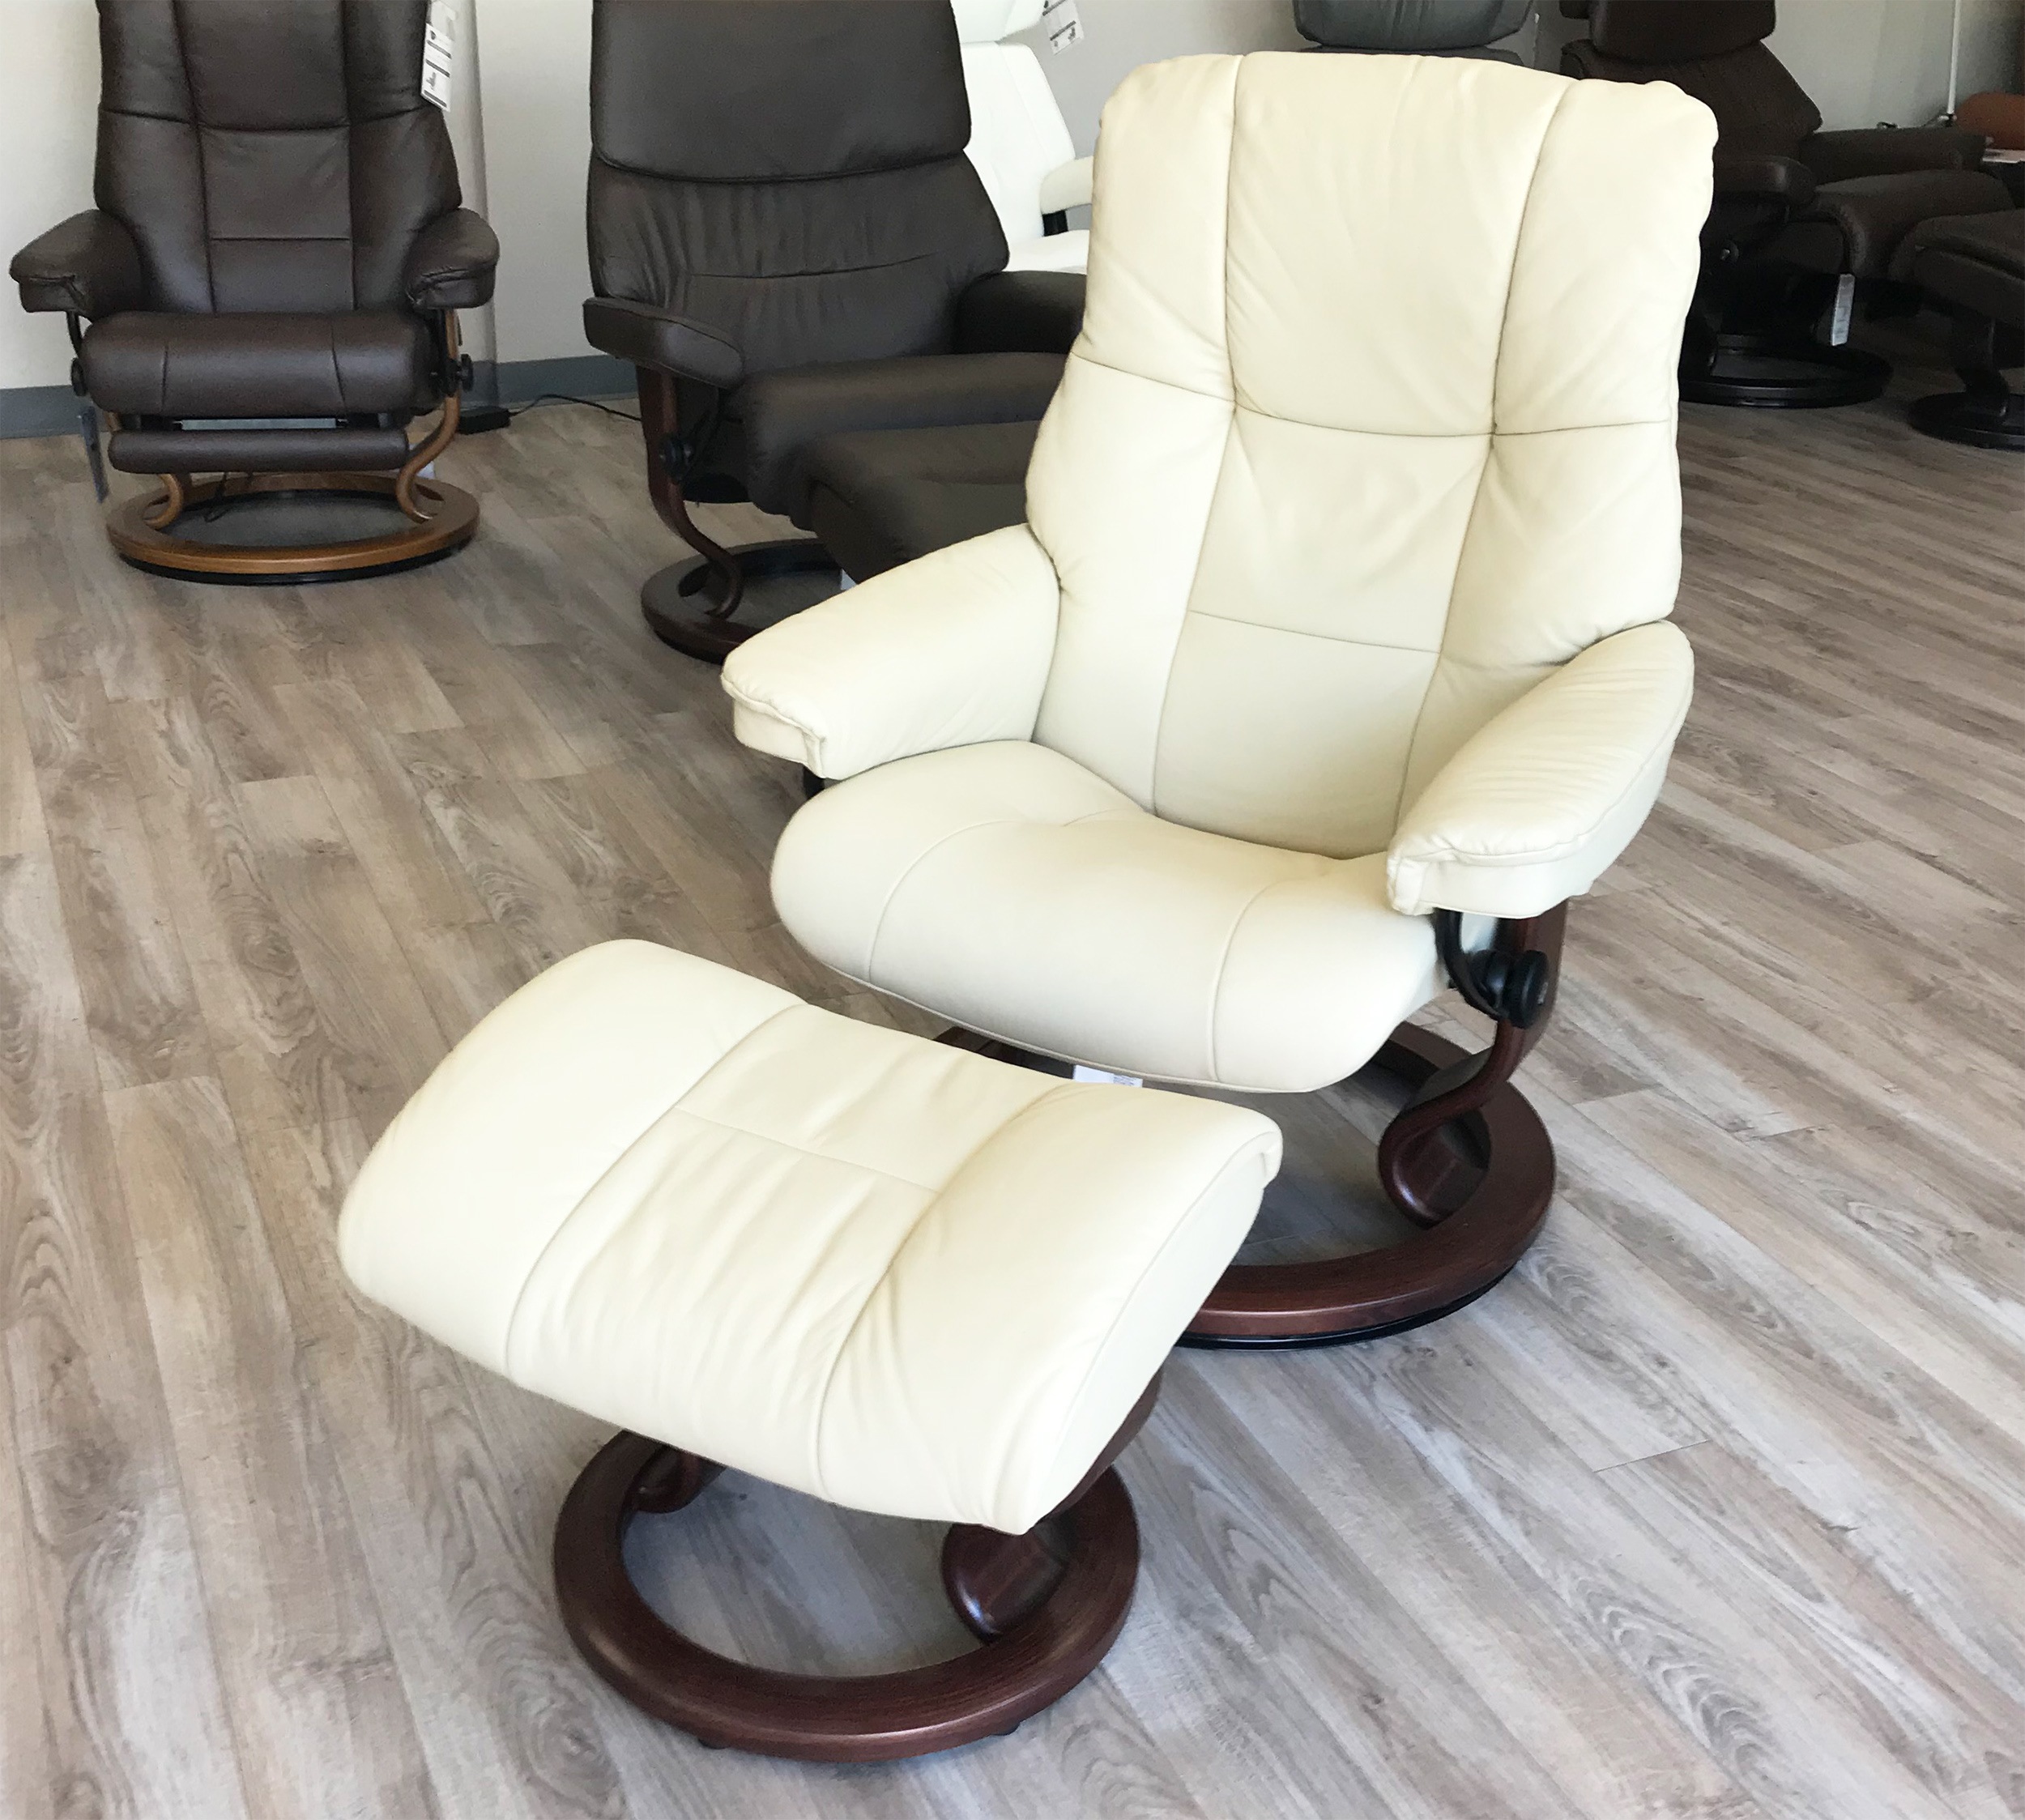 stressless kensington large mayfair paloma kitt leather recliner chair and ottoman by ekornes. Black Bedroom Furniture Sets. Home Design Ideas